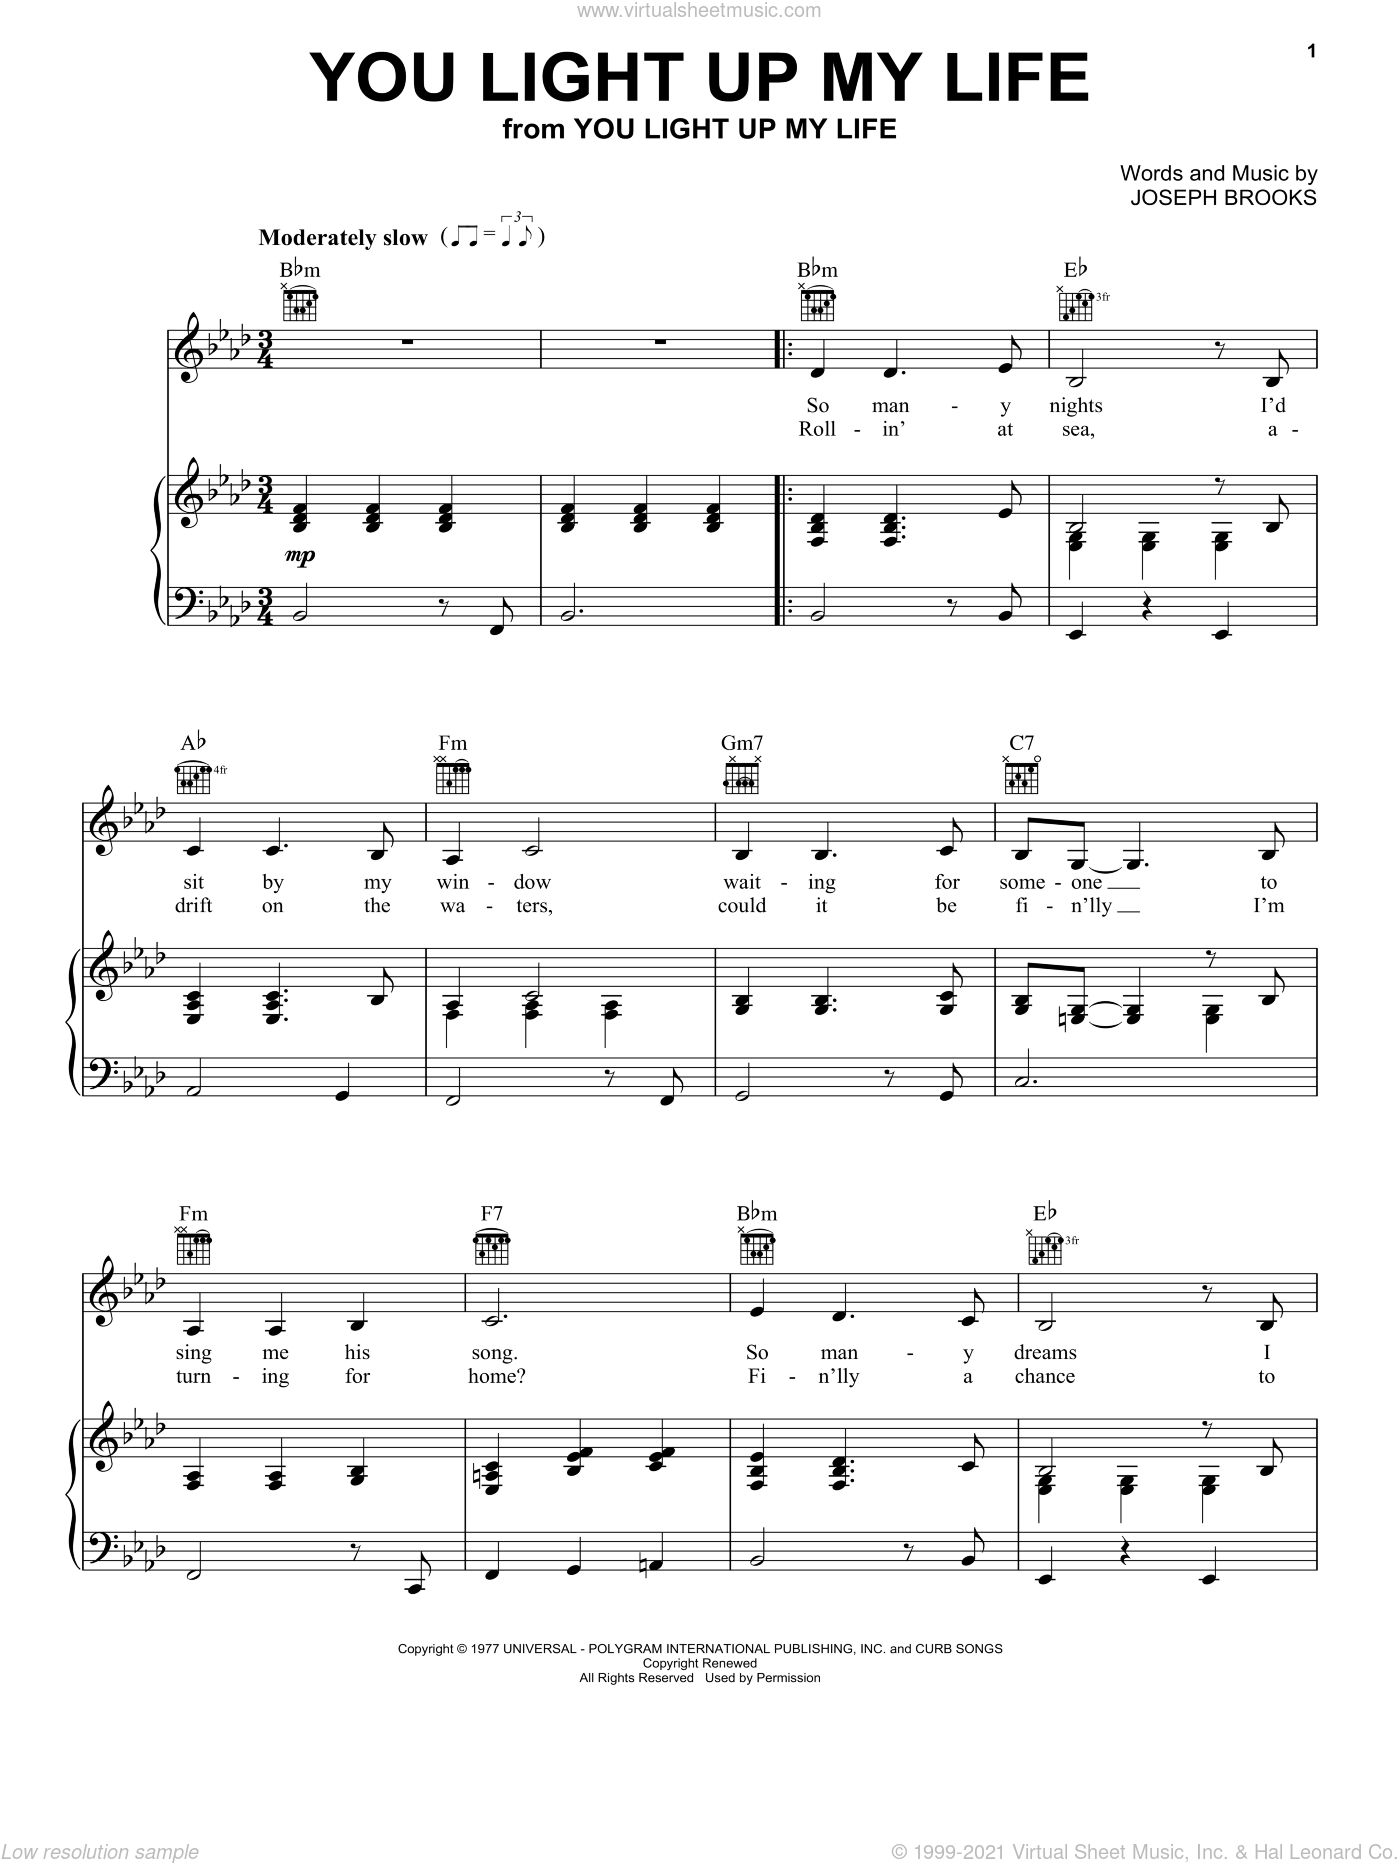 You Light Up My Life sheet music for voice, piano or guitar by Debby Boone, Kenny Rogers, LeAnn Rimes and Joseph Brooks, intermediate skill level